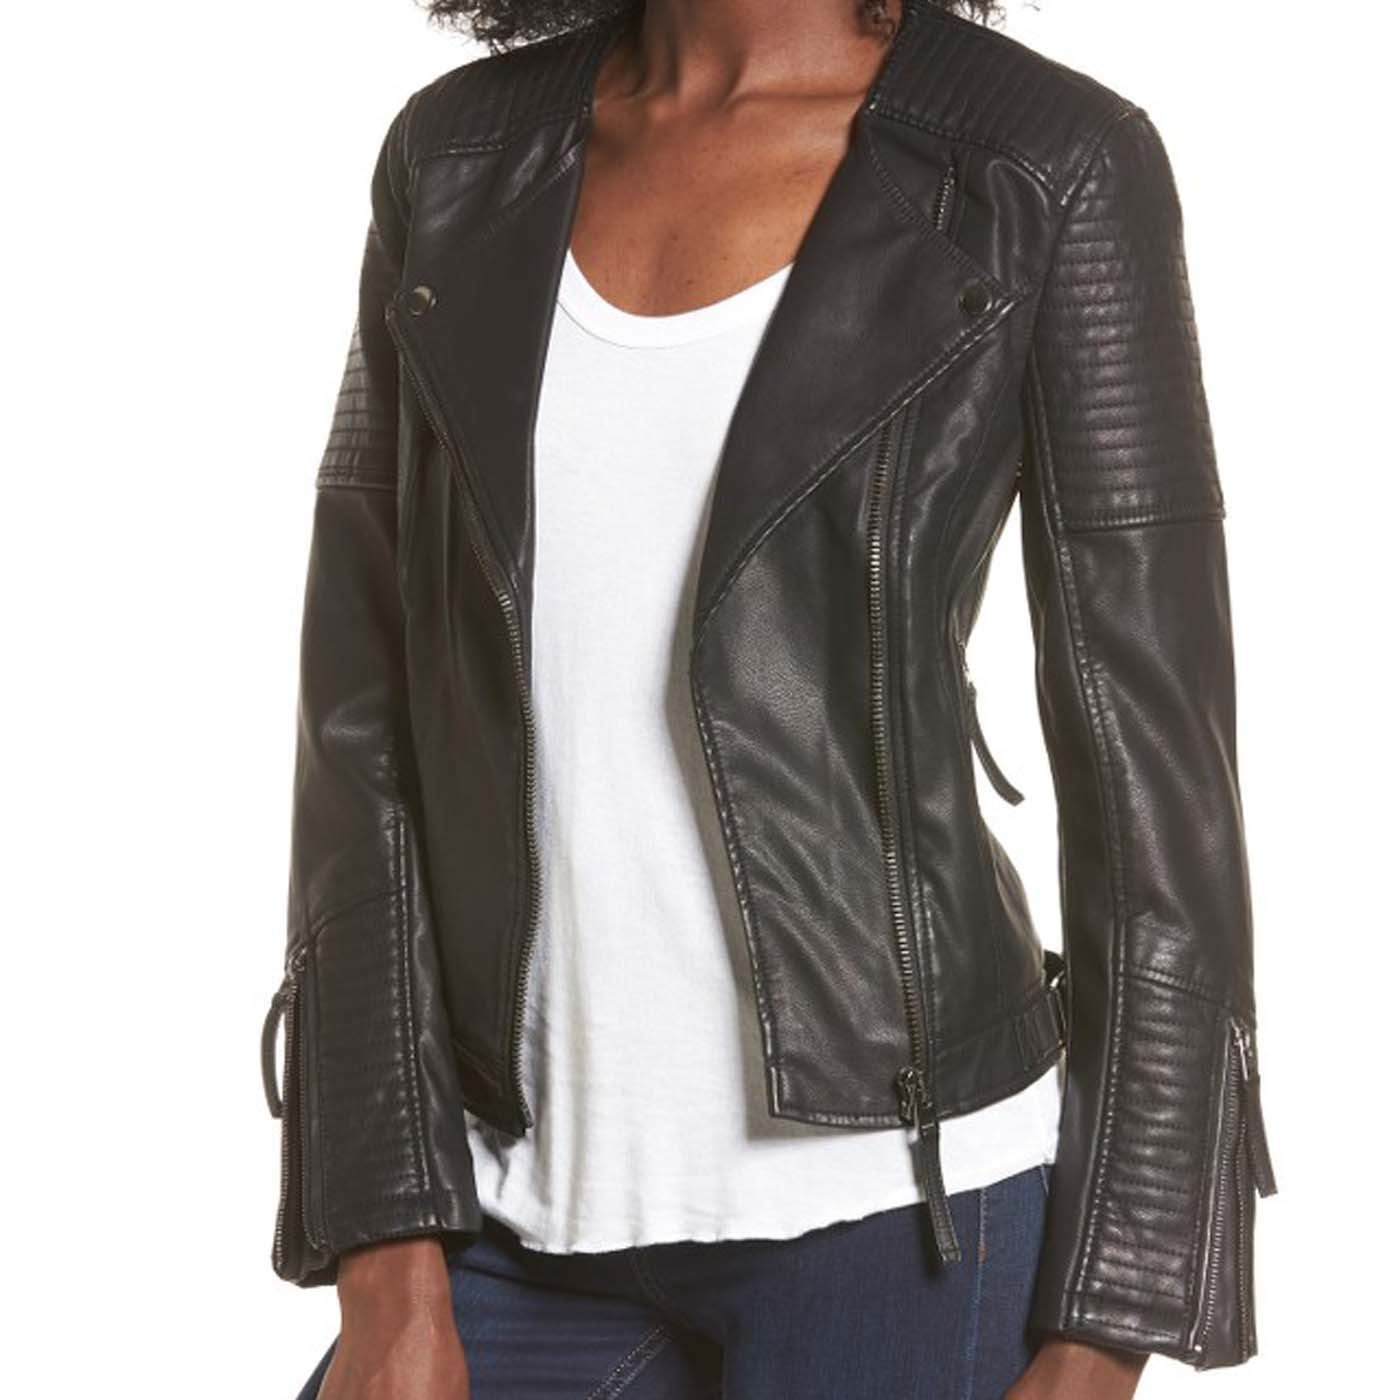 From bomber jackets, to motorcycle styles, studded collars, and colored leather, you'll find a variety of women's leather coats on rusticzcountrysstylexhomedecor.tk Sorted into convenient categories, we feature contemporary, relaxed, and timeless styles that never go out of fashion.